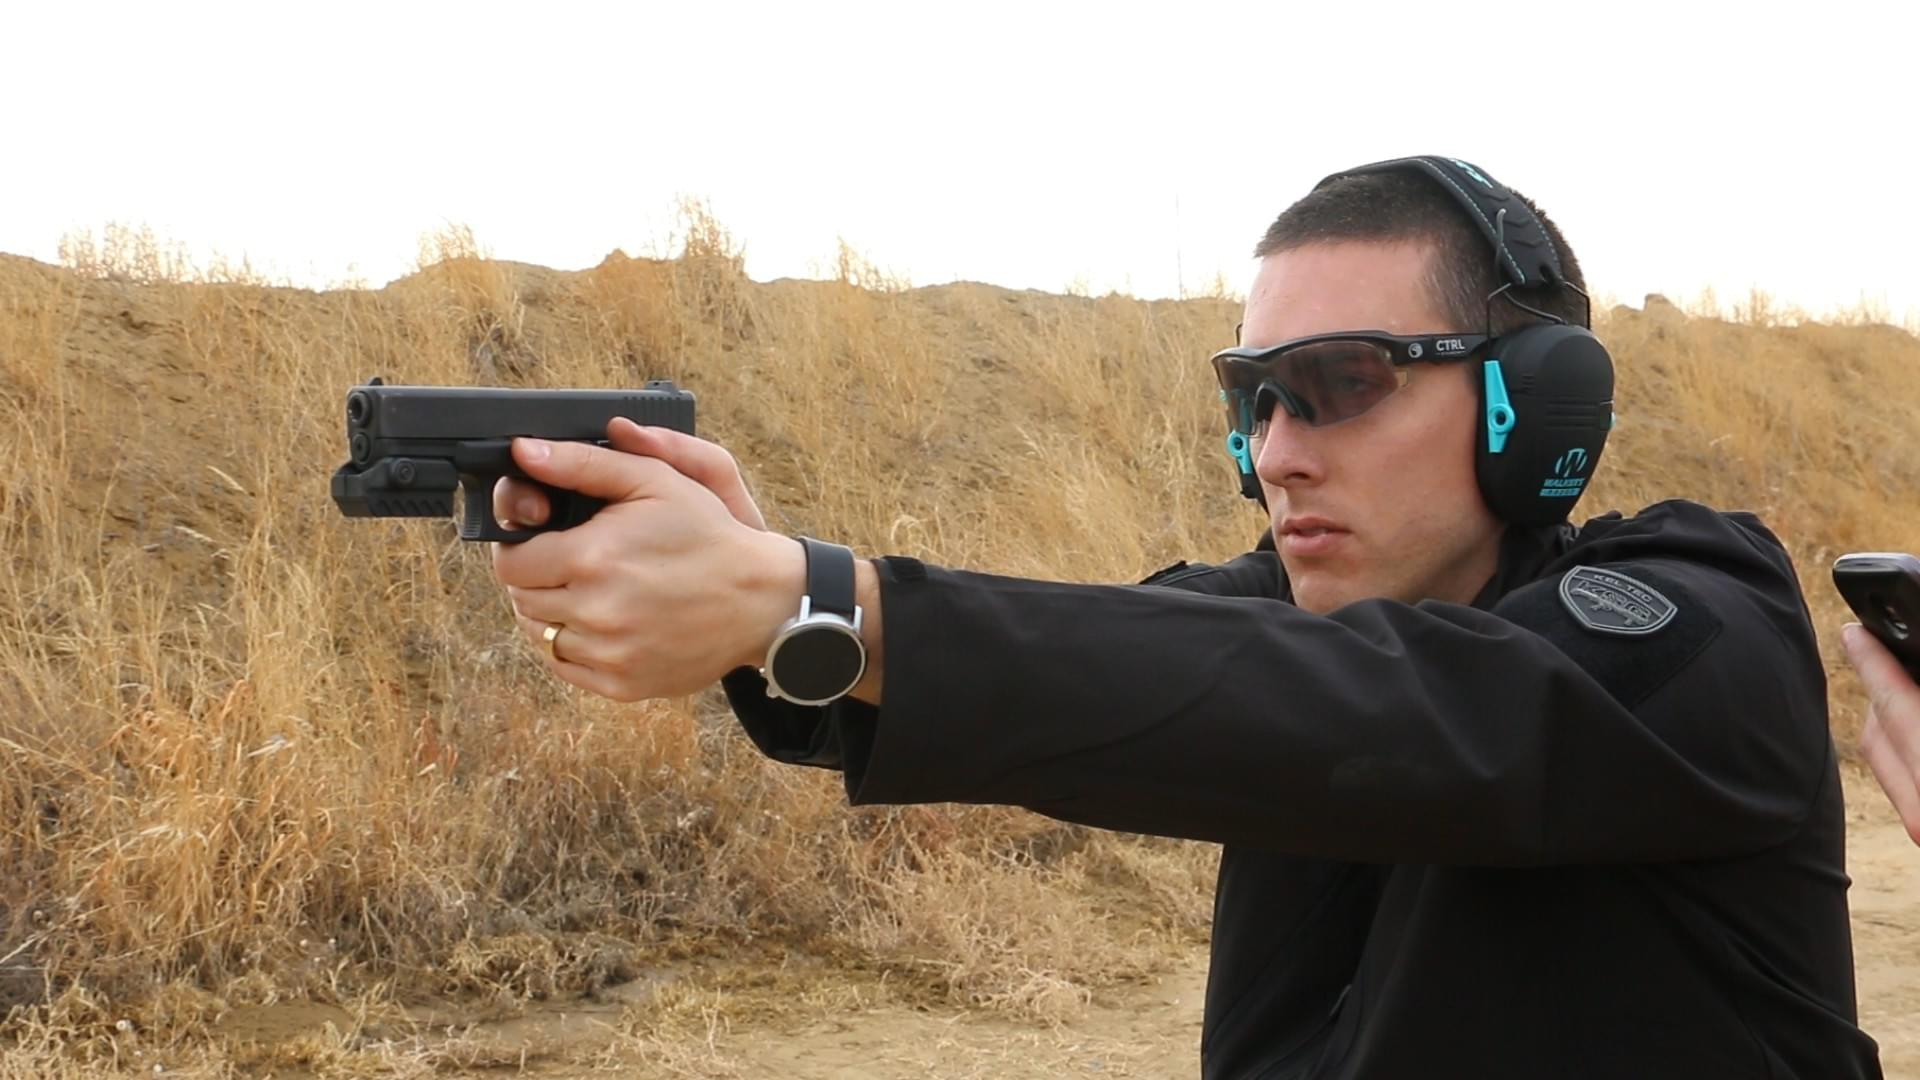 Learn to shoot a gun online course